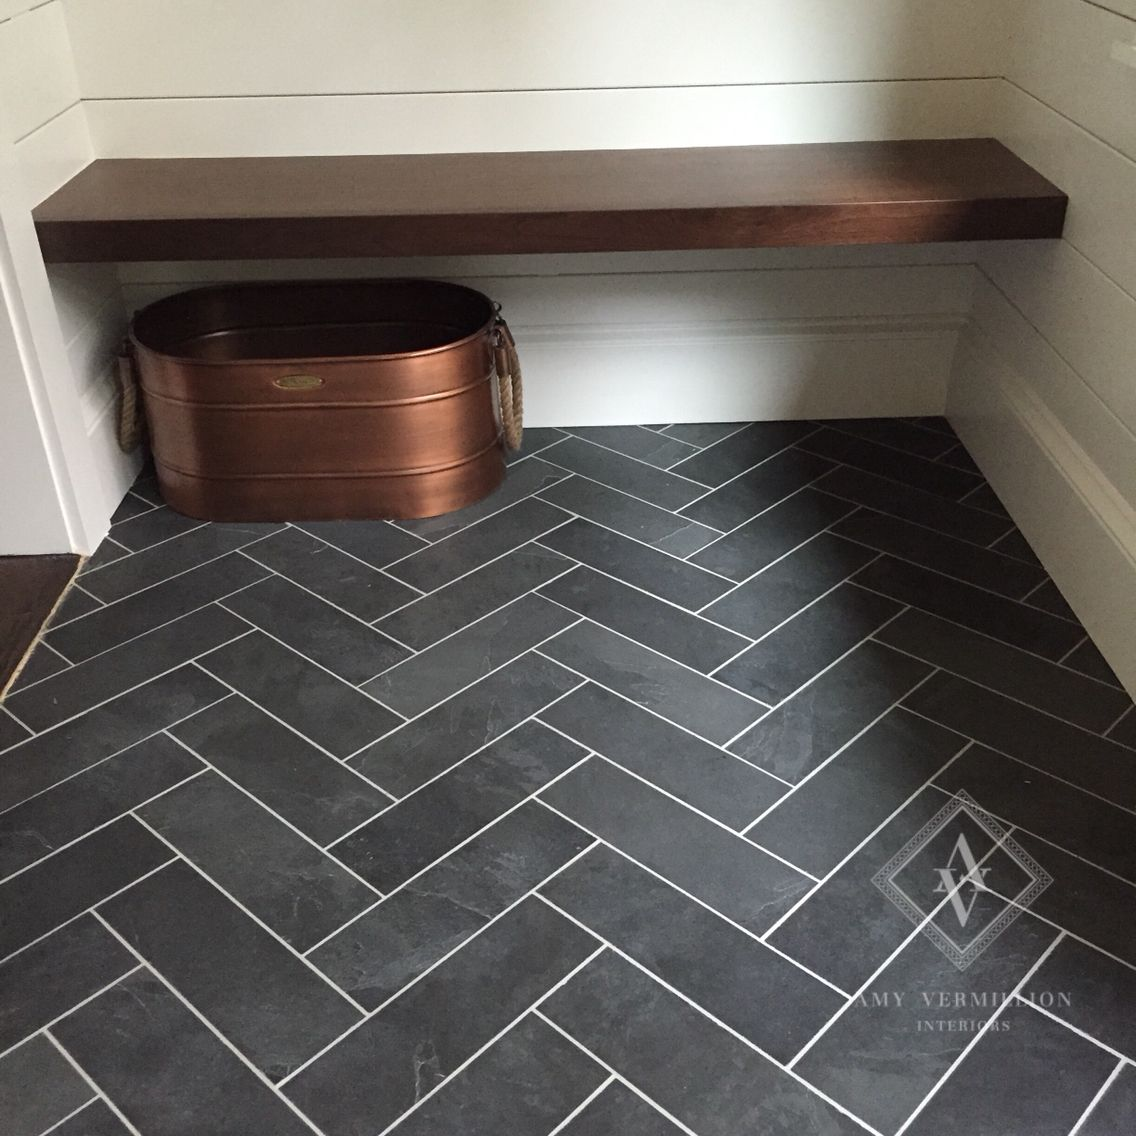 Amy vermillions home hand cut herringbone slate tile floor in amy vermillions home hand cut herringbone slate tile floor in mudroom ship lap walls doublecrazyfo Choice Image